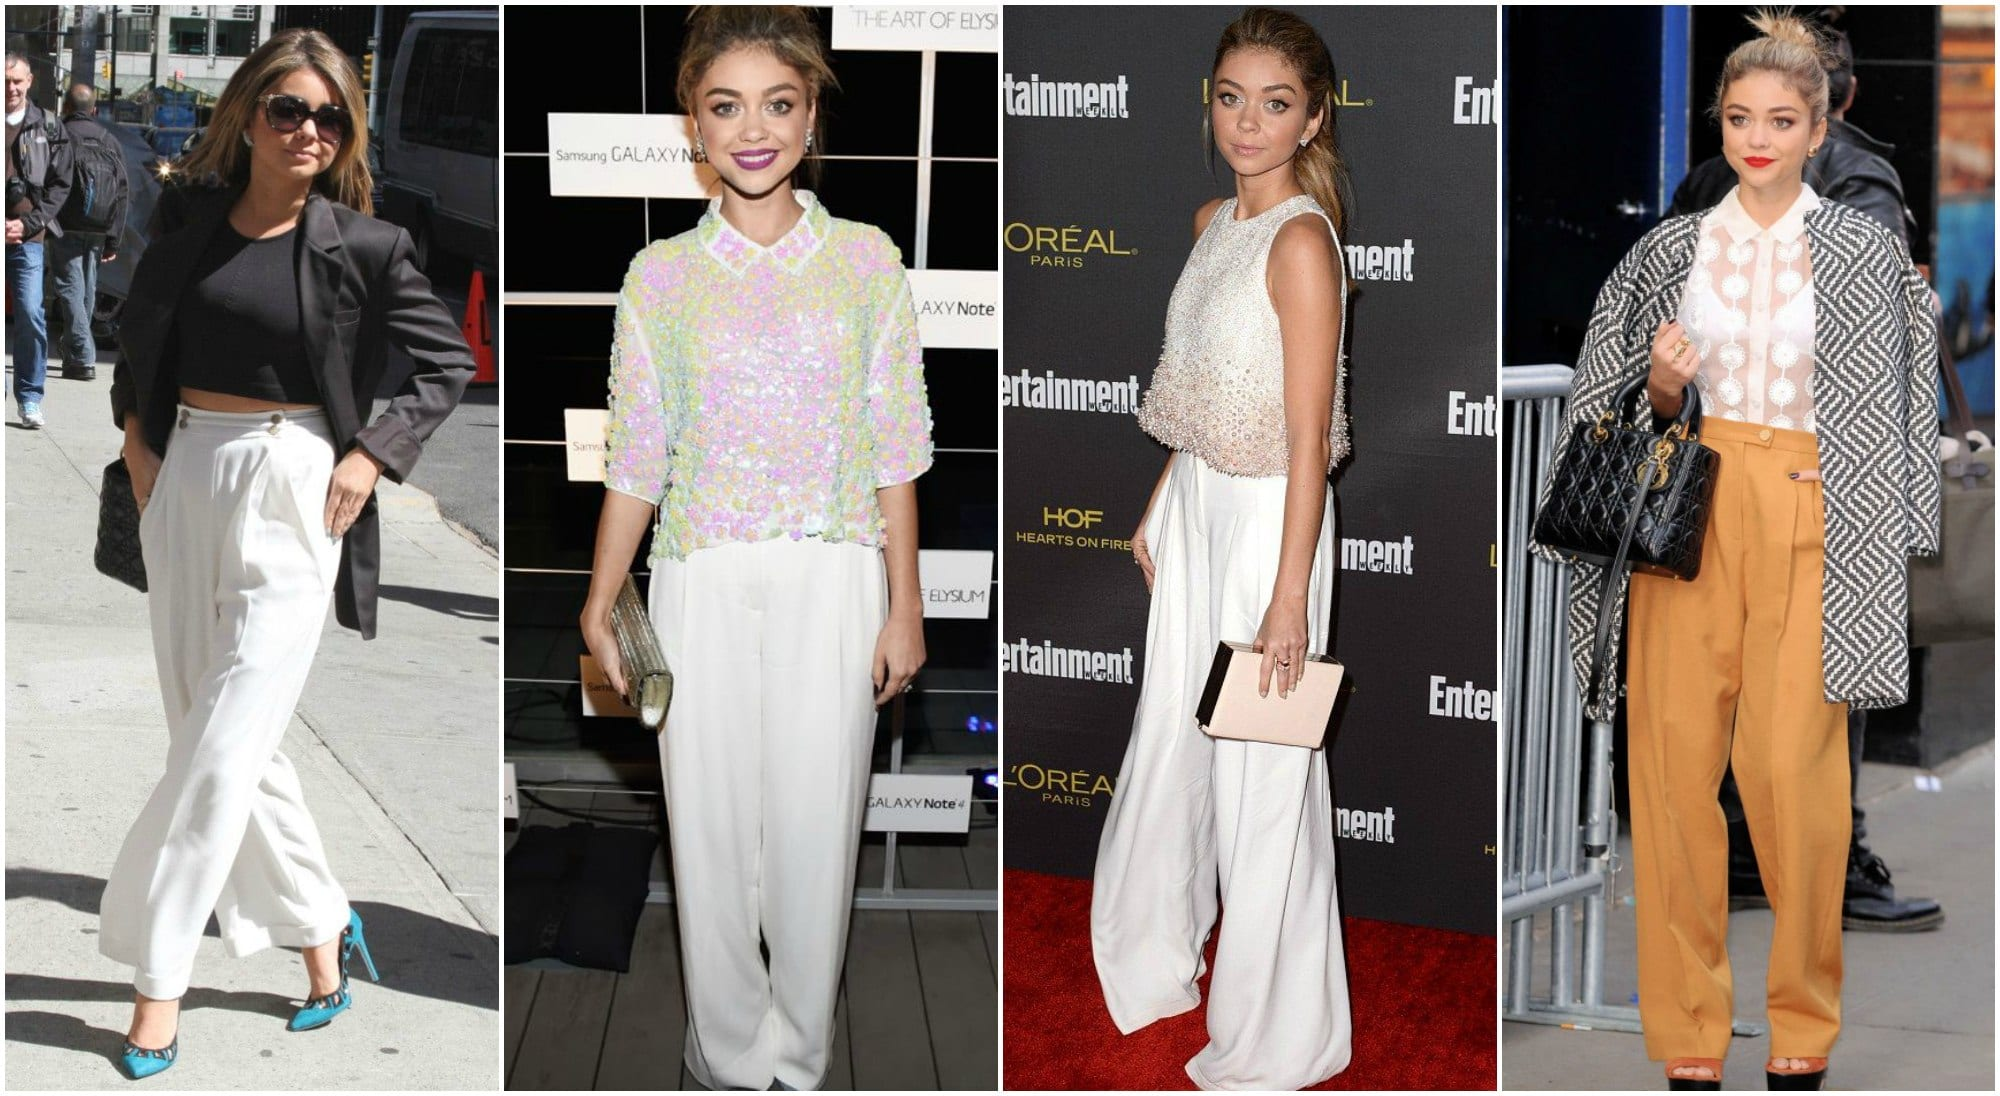 20 Ideas How to Wear Palazzo Pants if You Have a Short Height